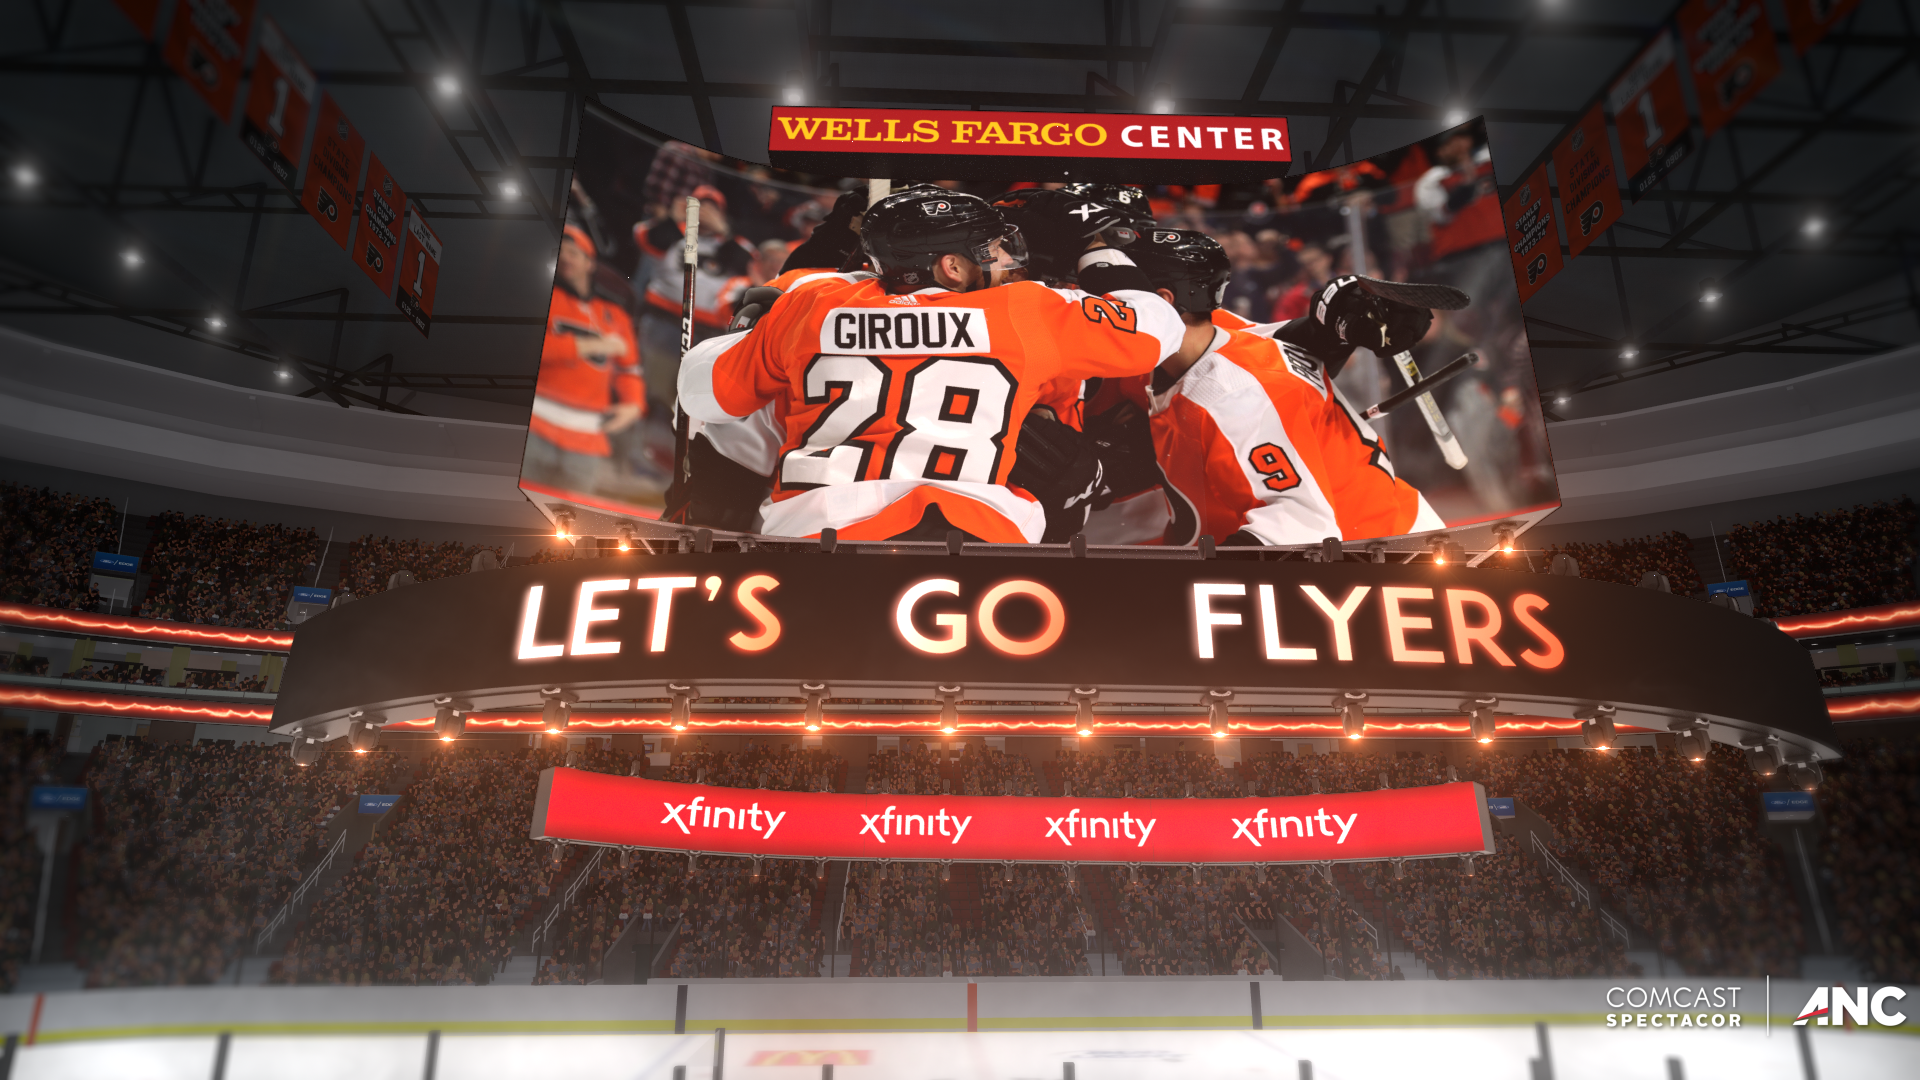 At the Rink: Philadelphia Flyers Flex Potential of Multi-Directional U.S. Patented 4K Kinetic Centerhung as Fans Return to Wells Fargo Center - Game pres team experimenting with new looks and effects for board that debuted in 2019